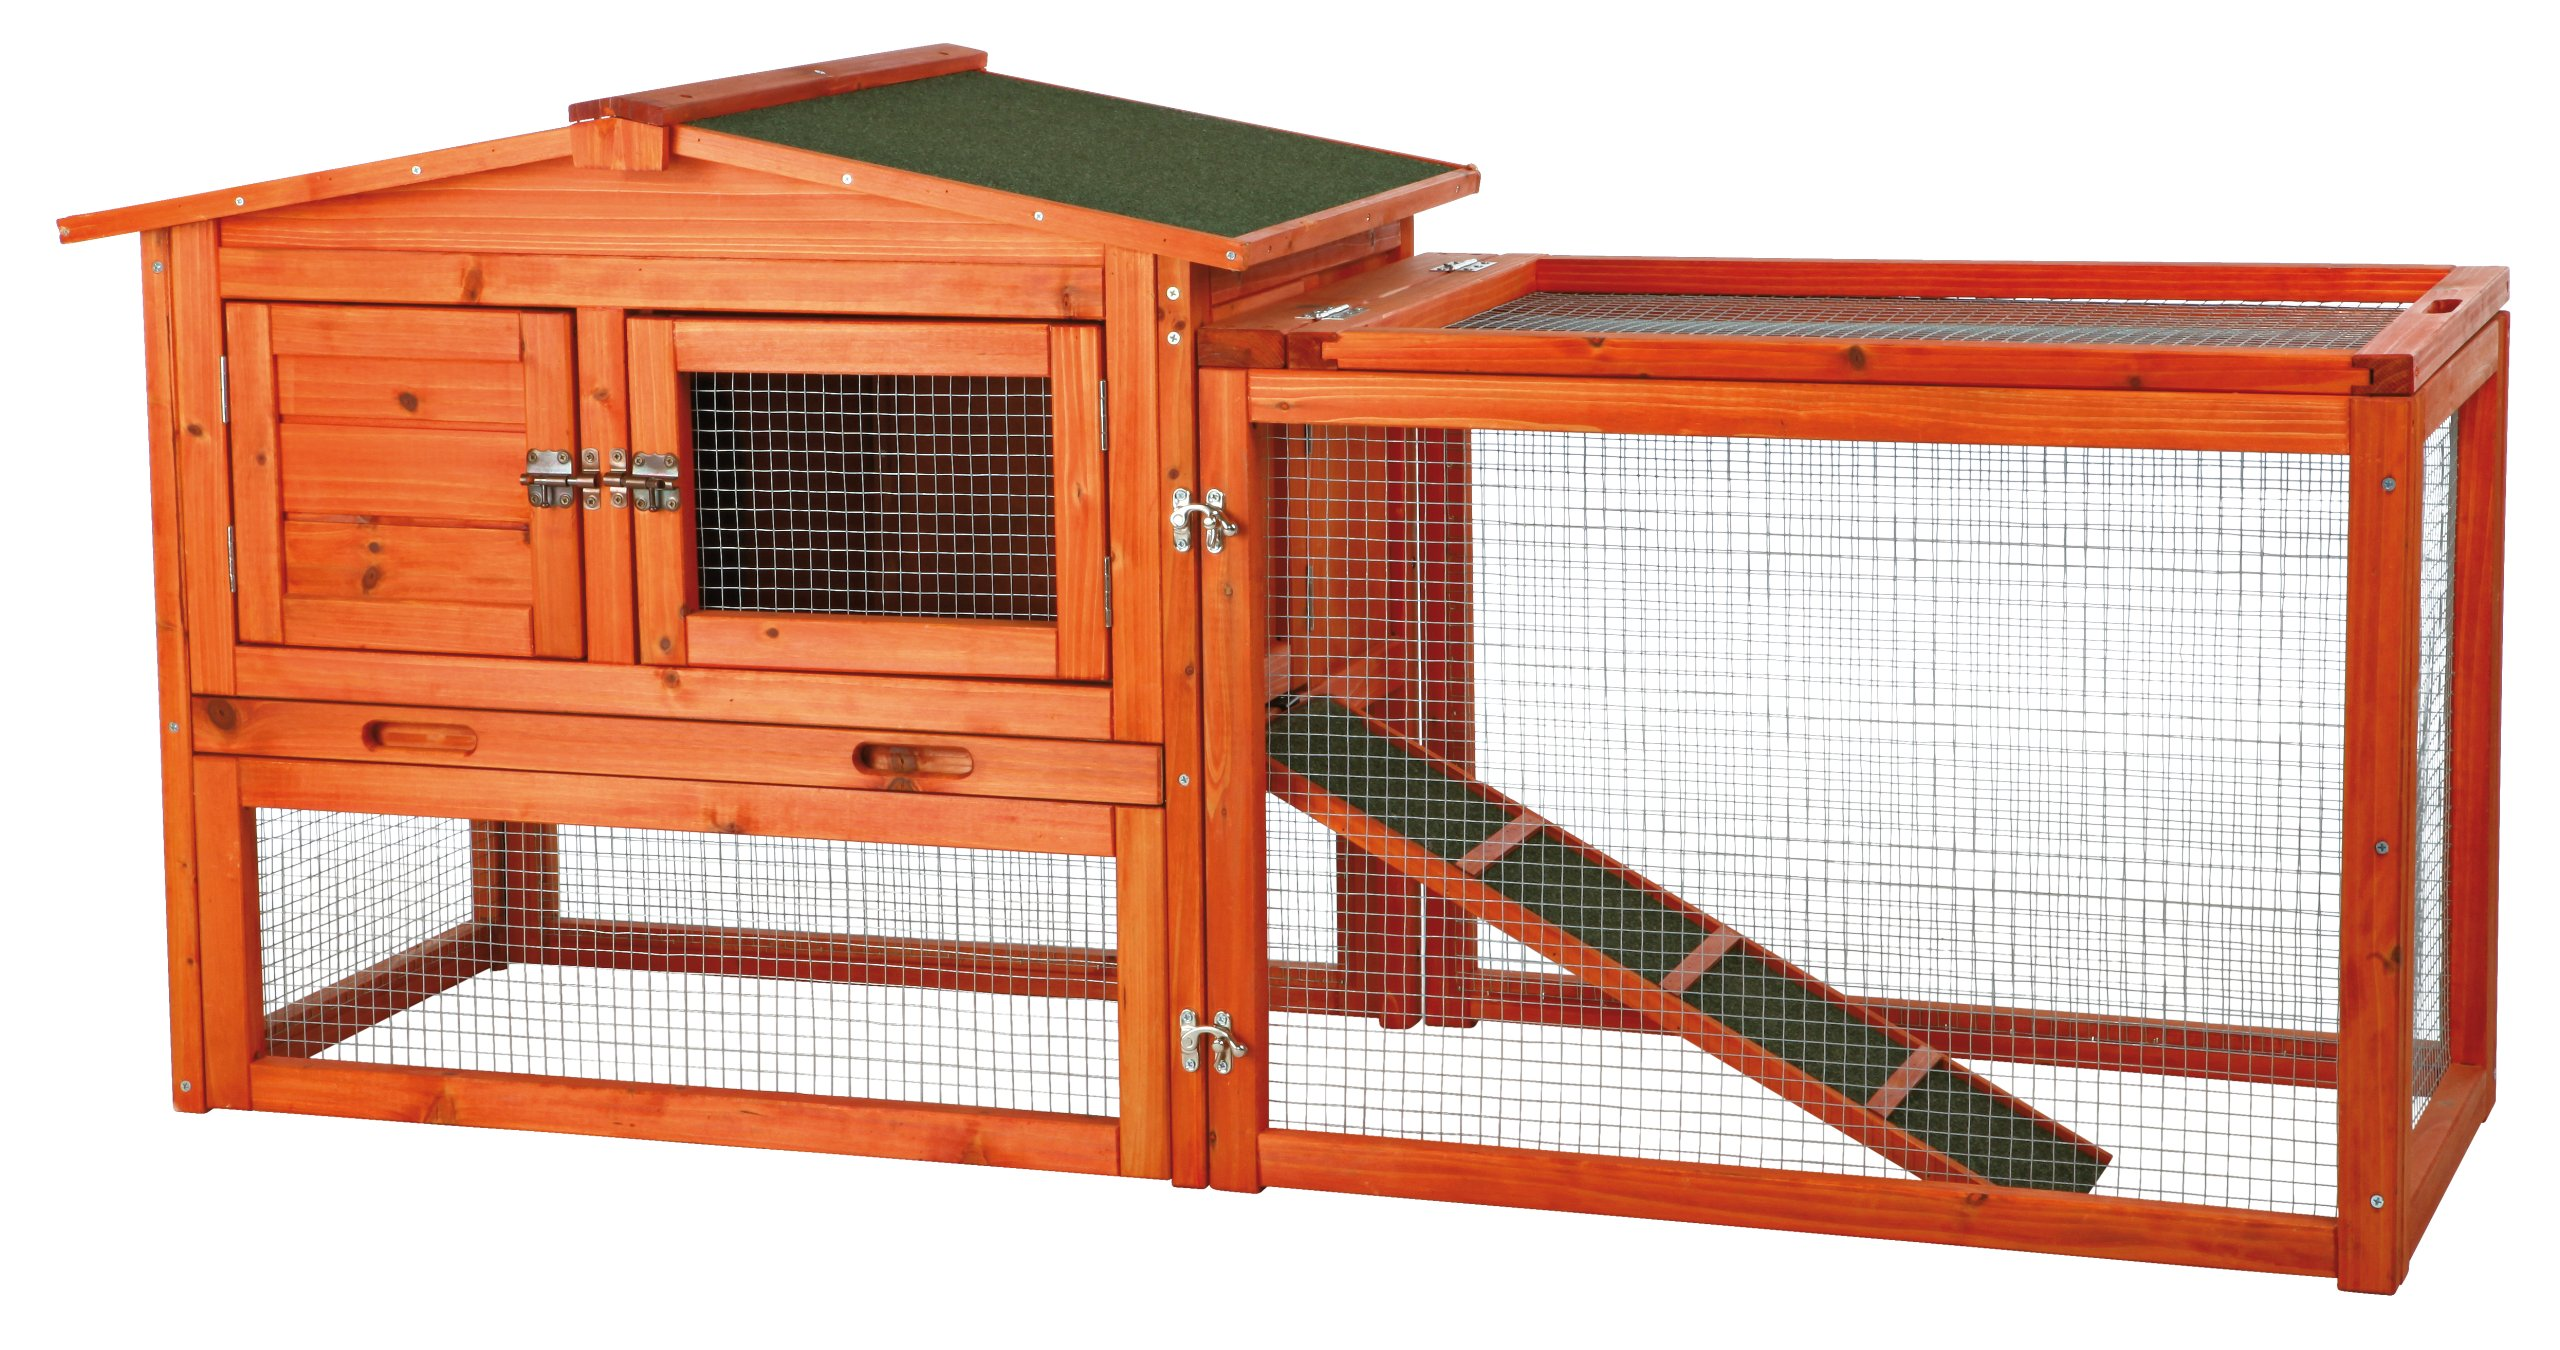 Trixie Pet Products Rabbit Hutch with Outdoor Run by Trixie